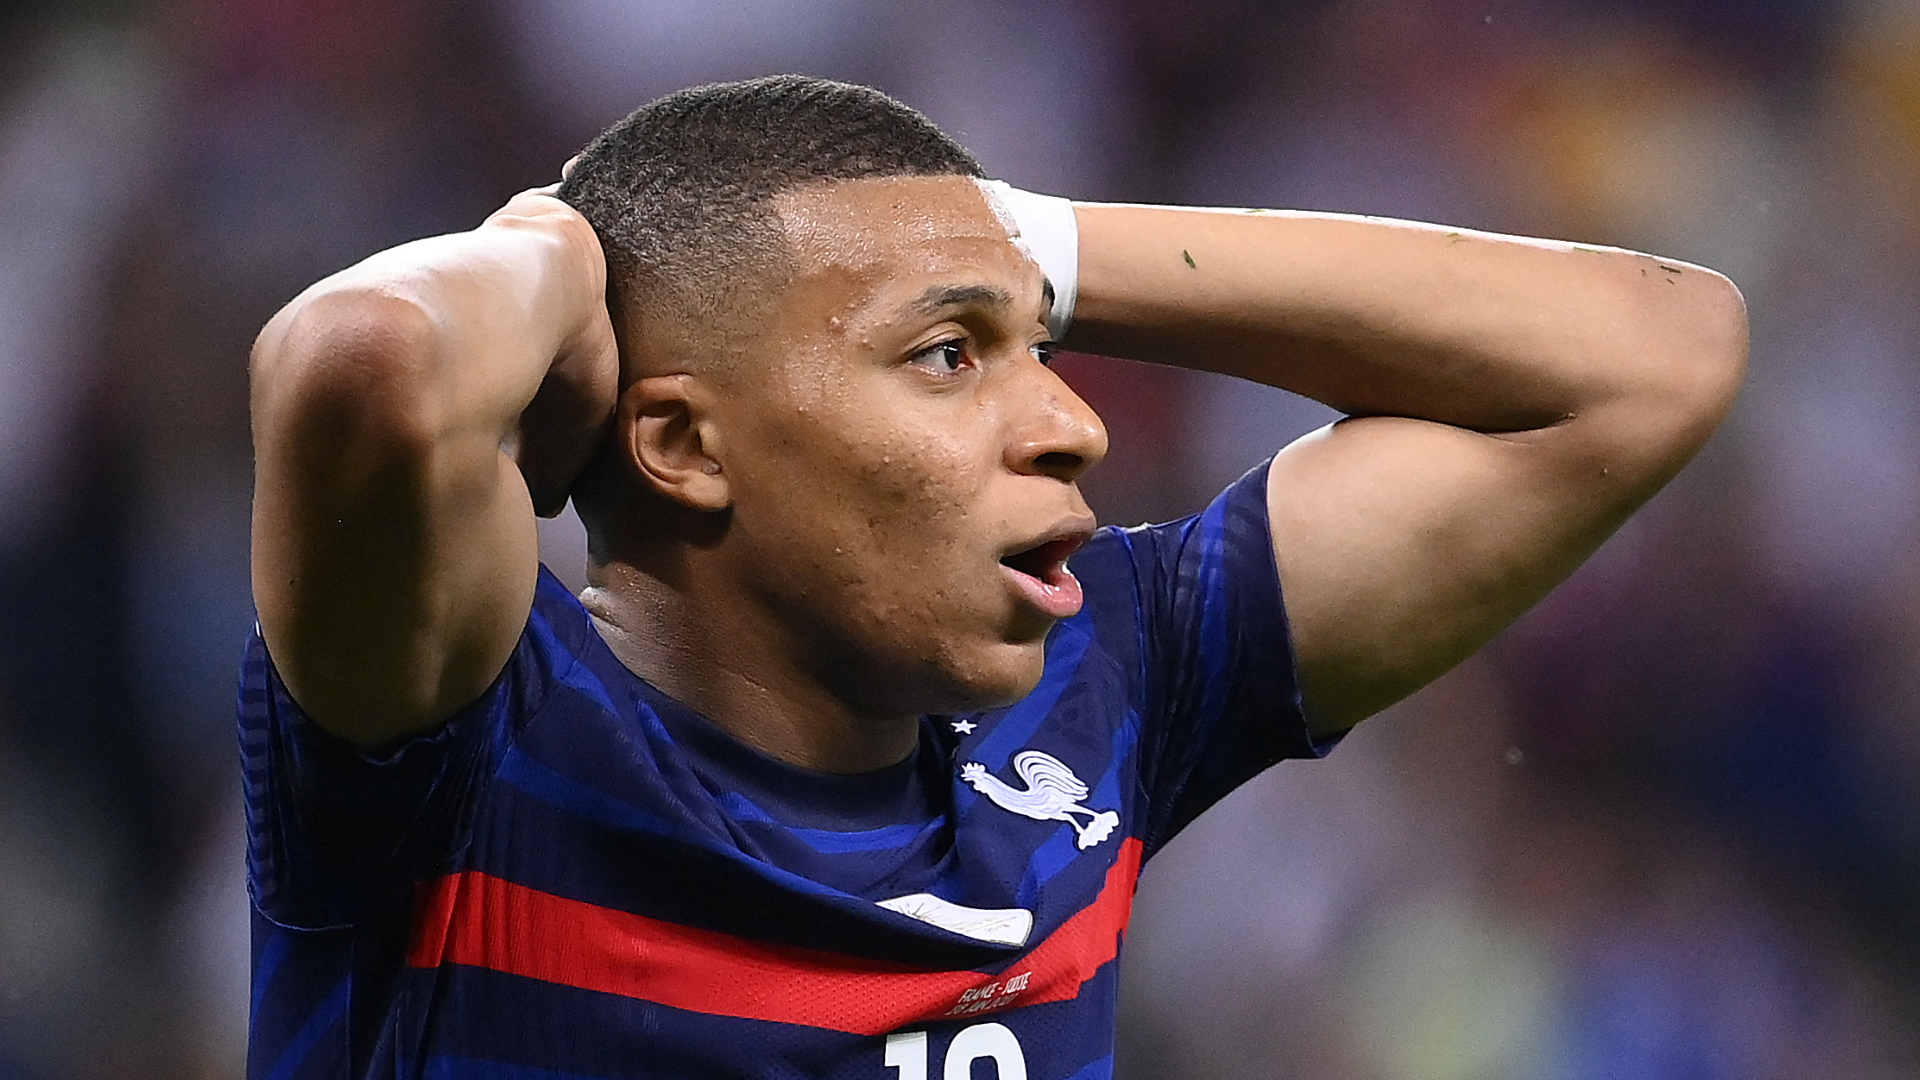 'You remain among the best' – Harit offers support to Mbappe after penalty nightmare